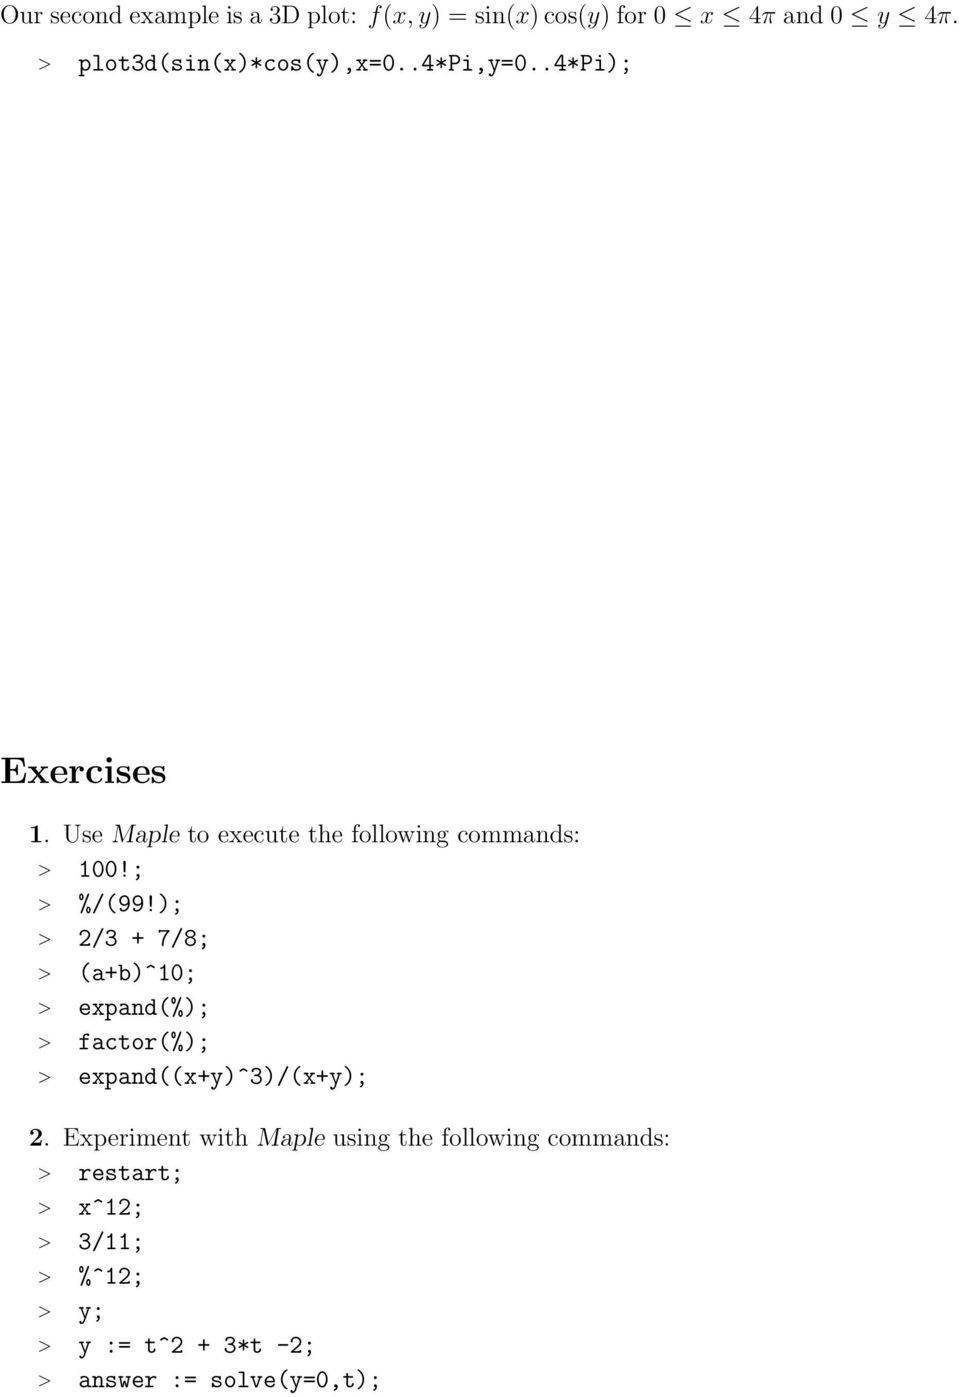 Free Worksheet Factoring Trinomials Of The Form Ax2 Bx C Worksheet Answers factoring trinomials of the form ax2 bx c worksheet answers russian furry info